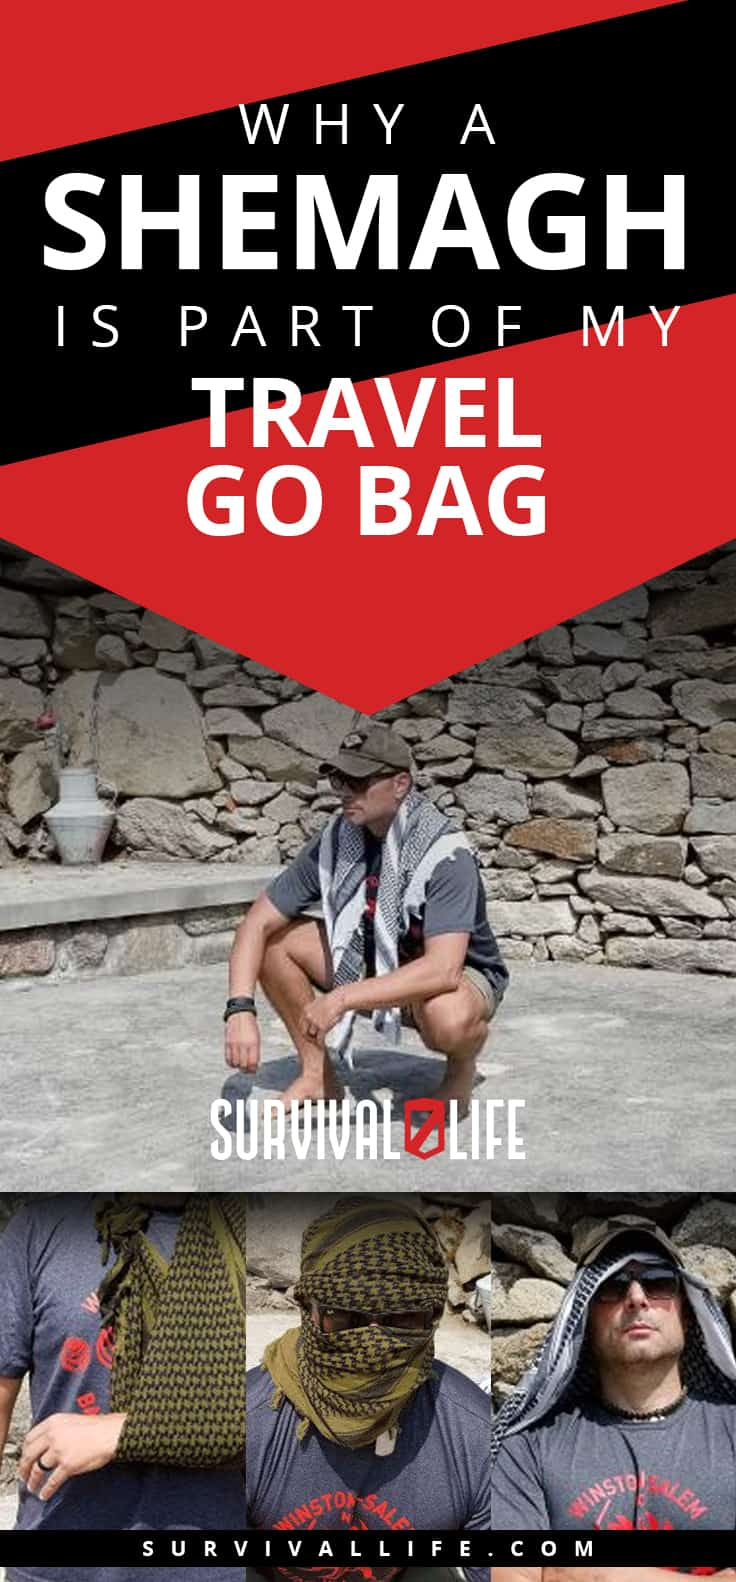 Placard   Why A Shemagh Is Part Of My Travel Go Bag